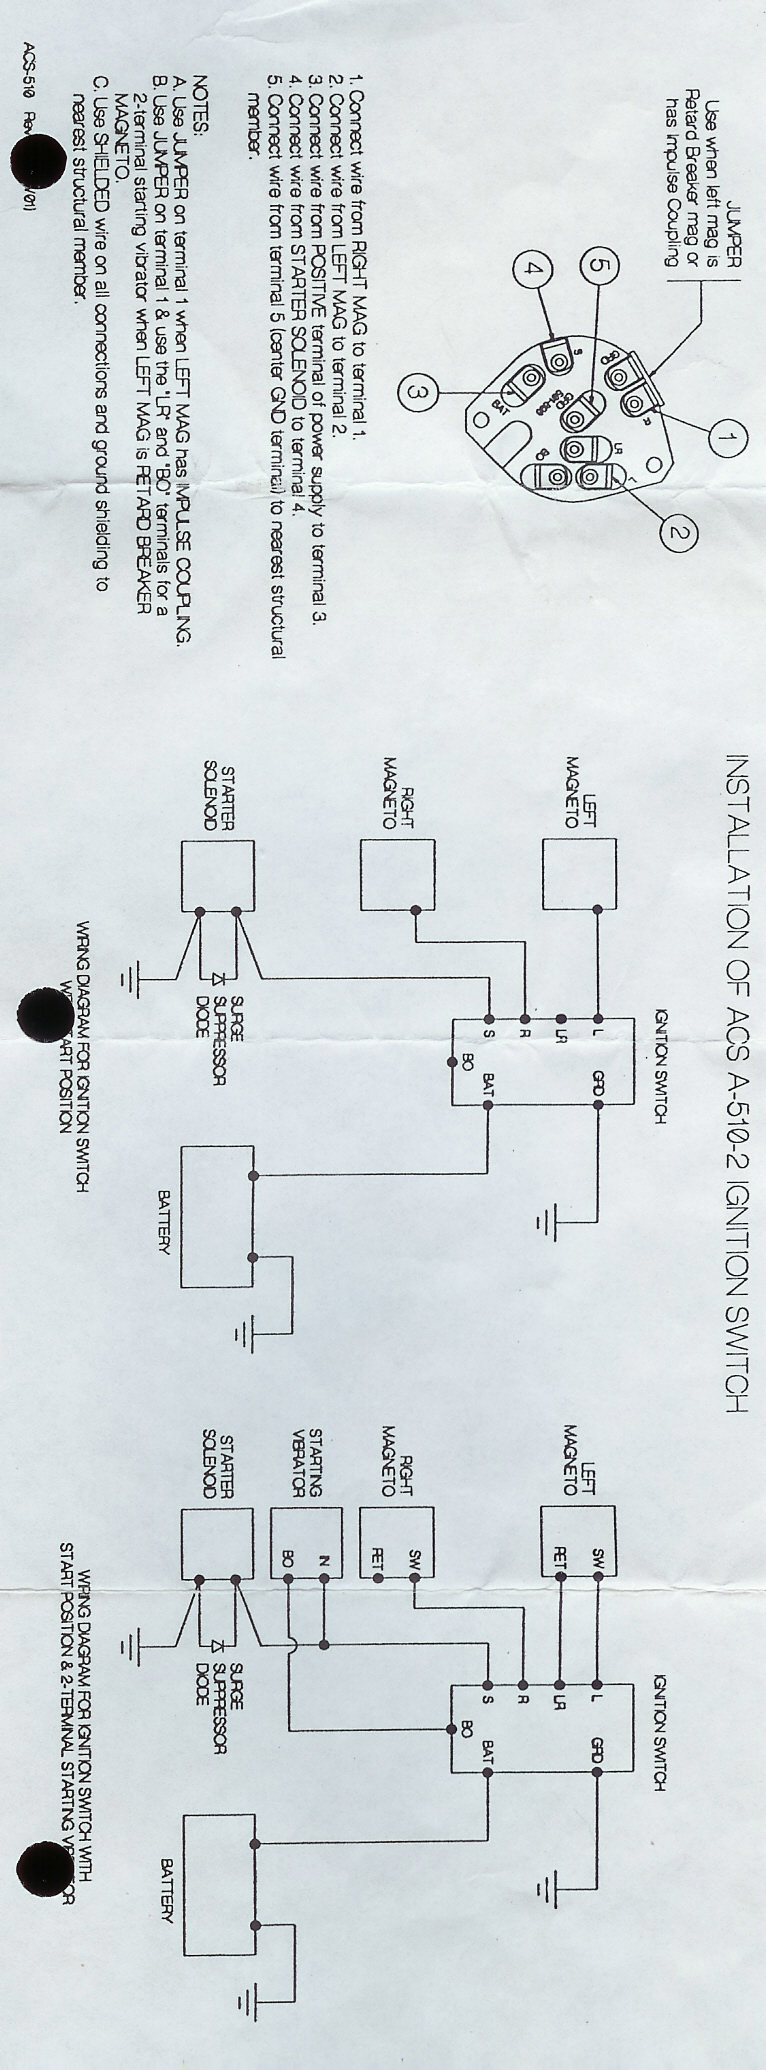 Key_Switch_244 matronics email lists view topic wiring diagram for slick bendix shower of sparks wiring diagram at mifinder.co